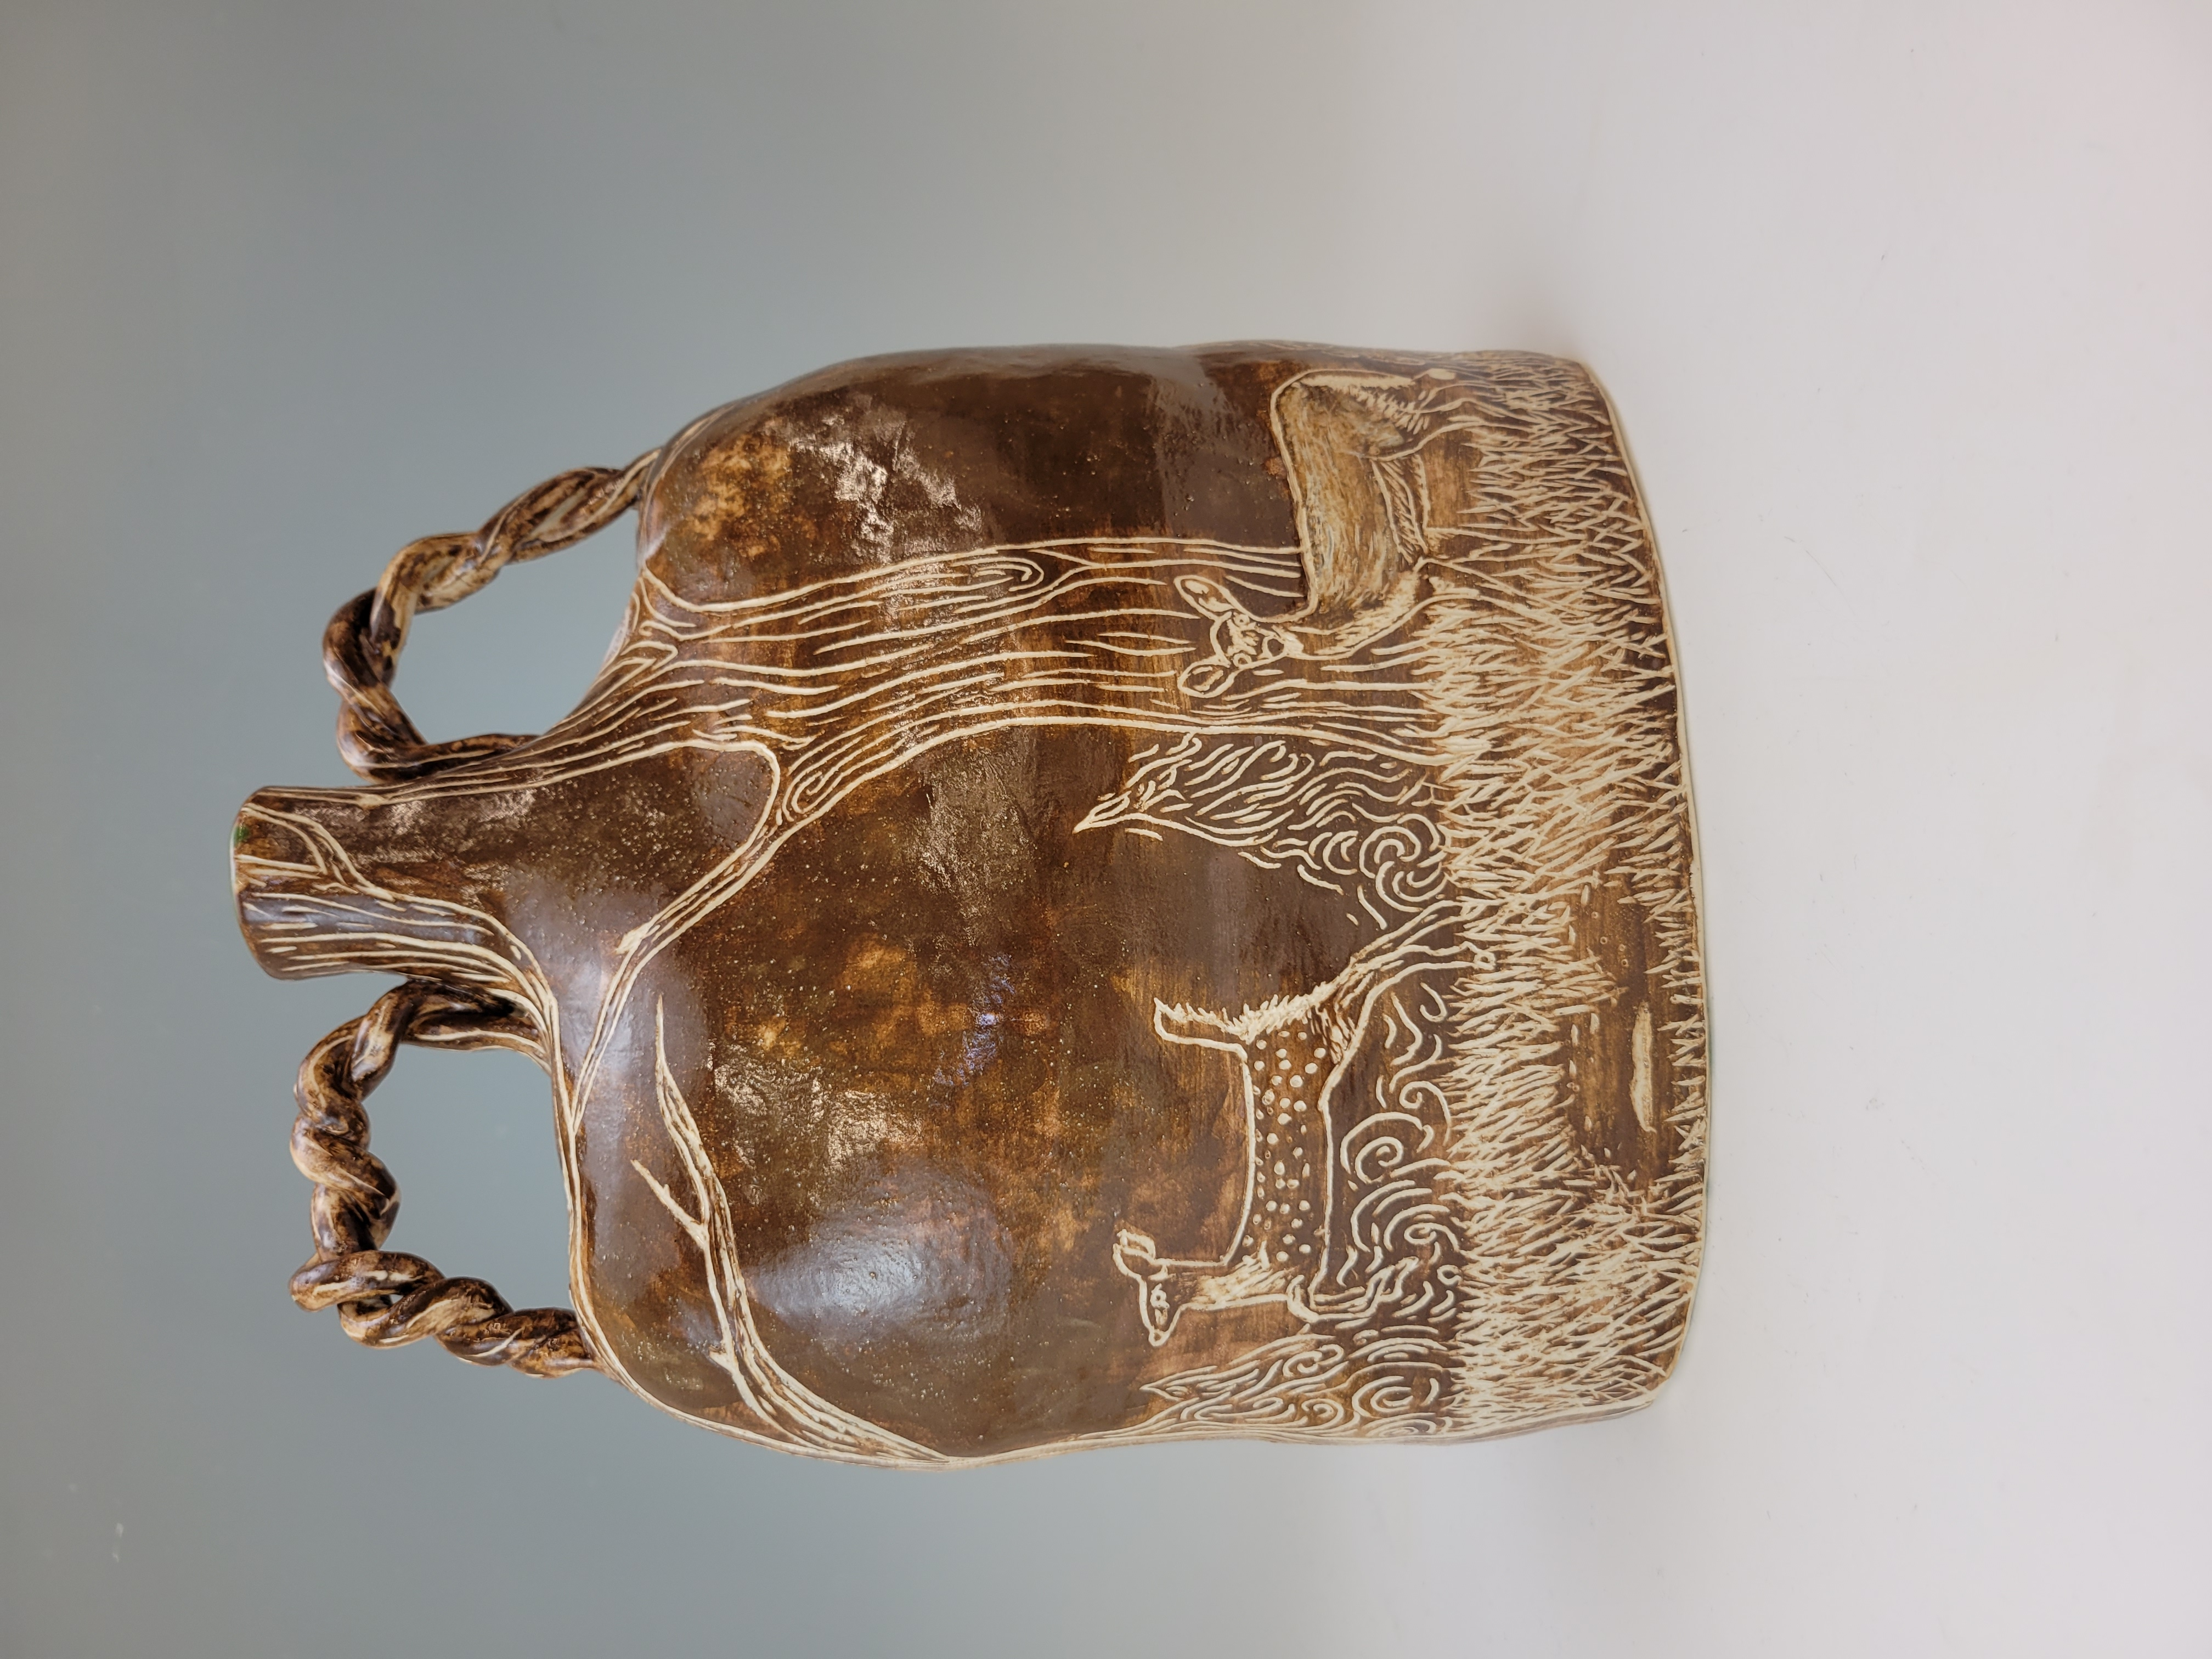 Image of the Giants of the Forest ceramic vase sculpture back.